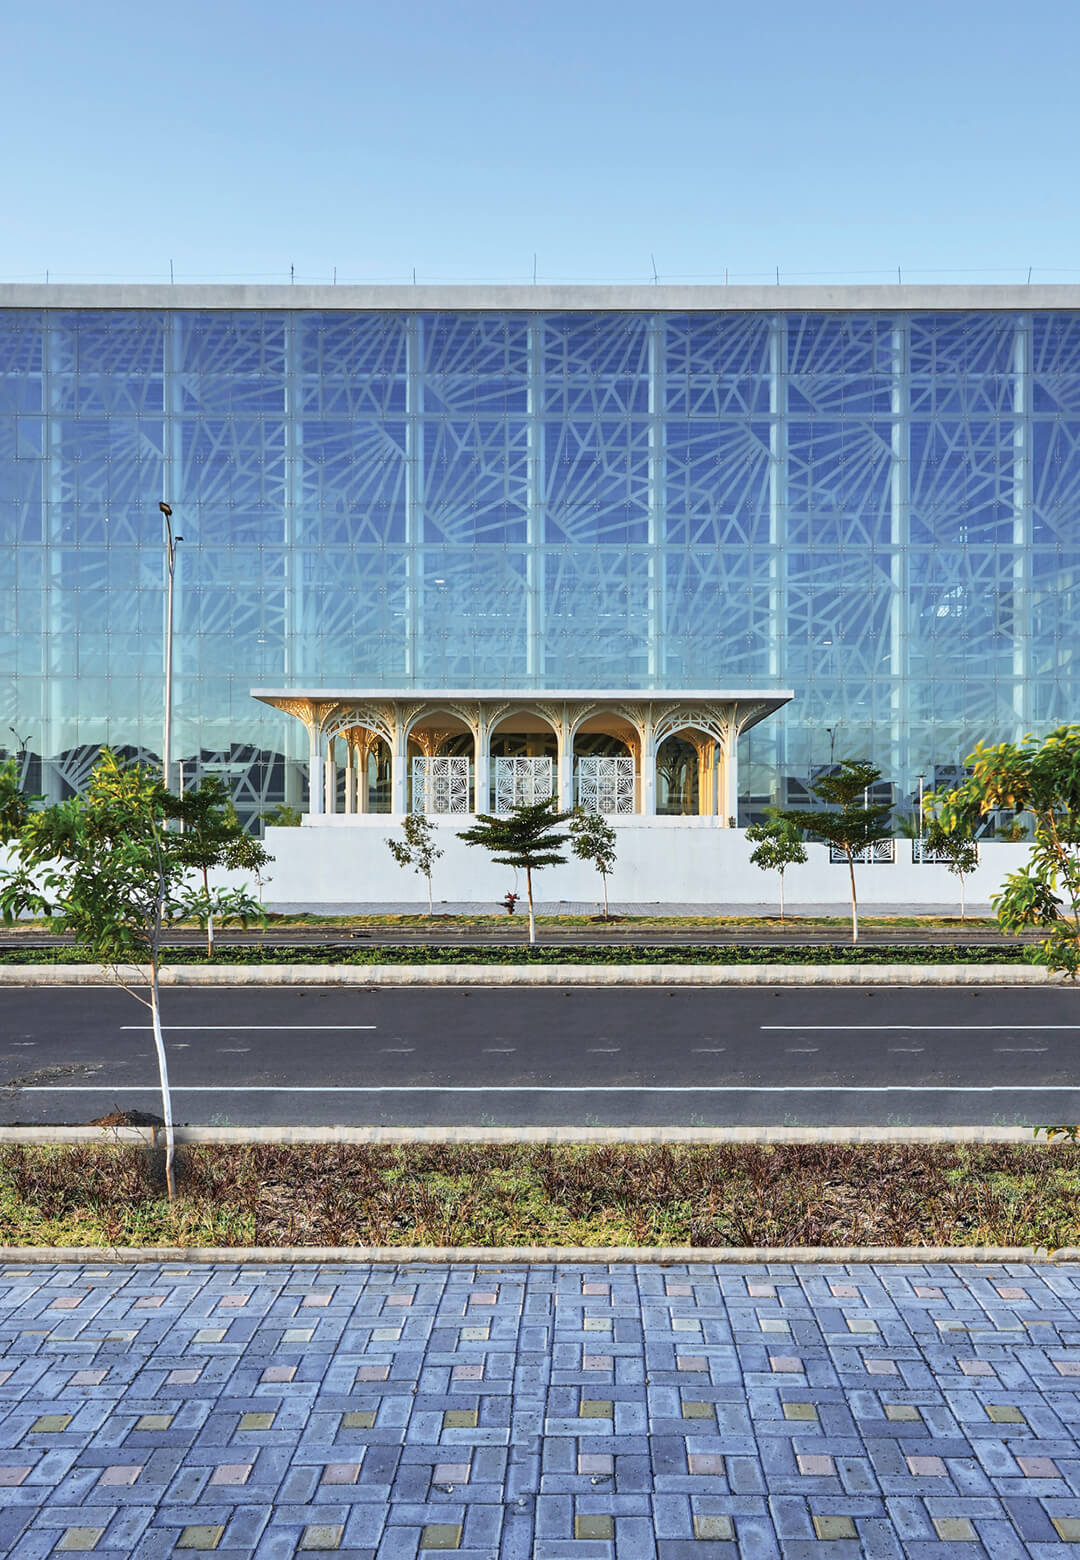 Auric Hall in Aurangabad, Maharashtra, will stand as a landmark to the upcoming city | Auric Hall by IMK Architects | STIRworld